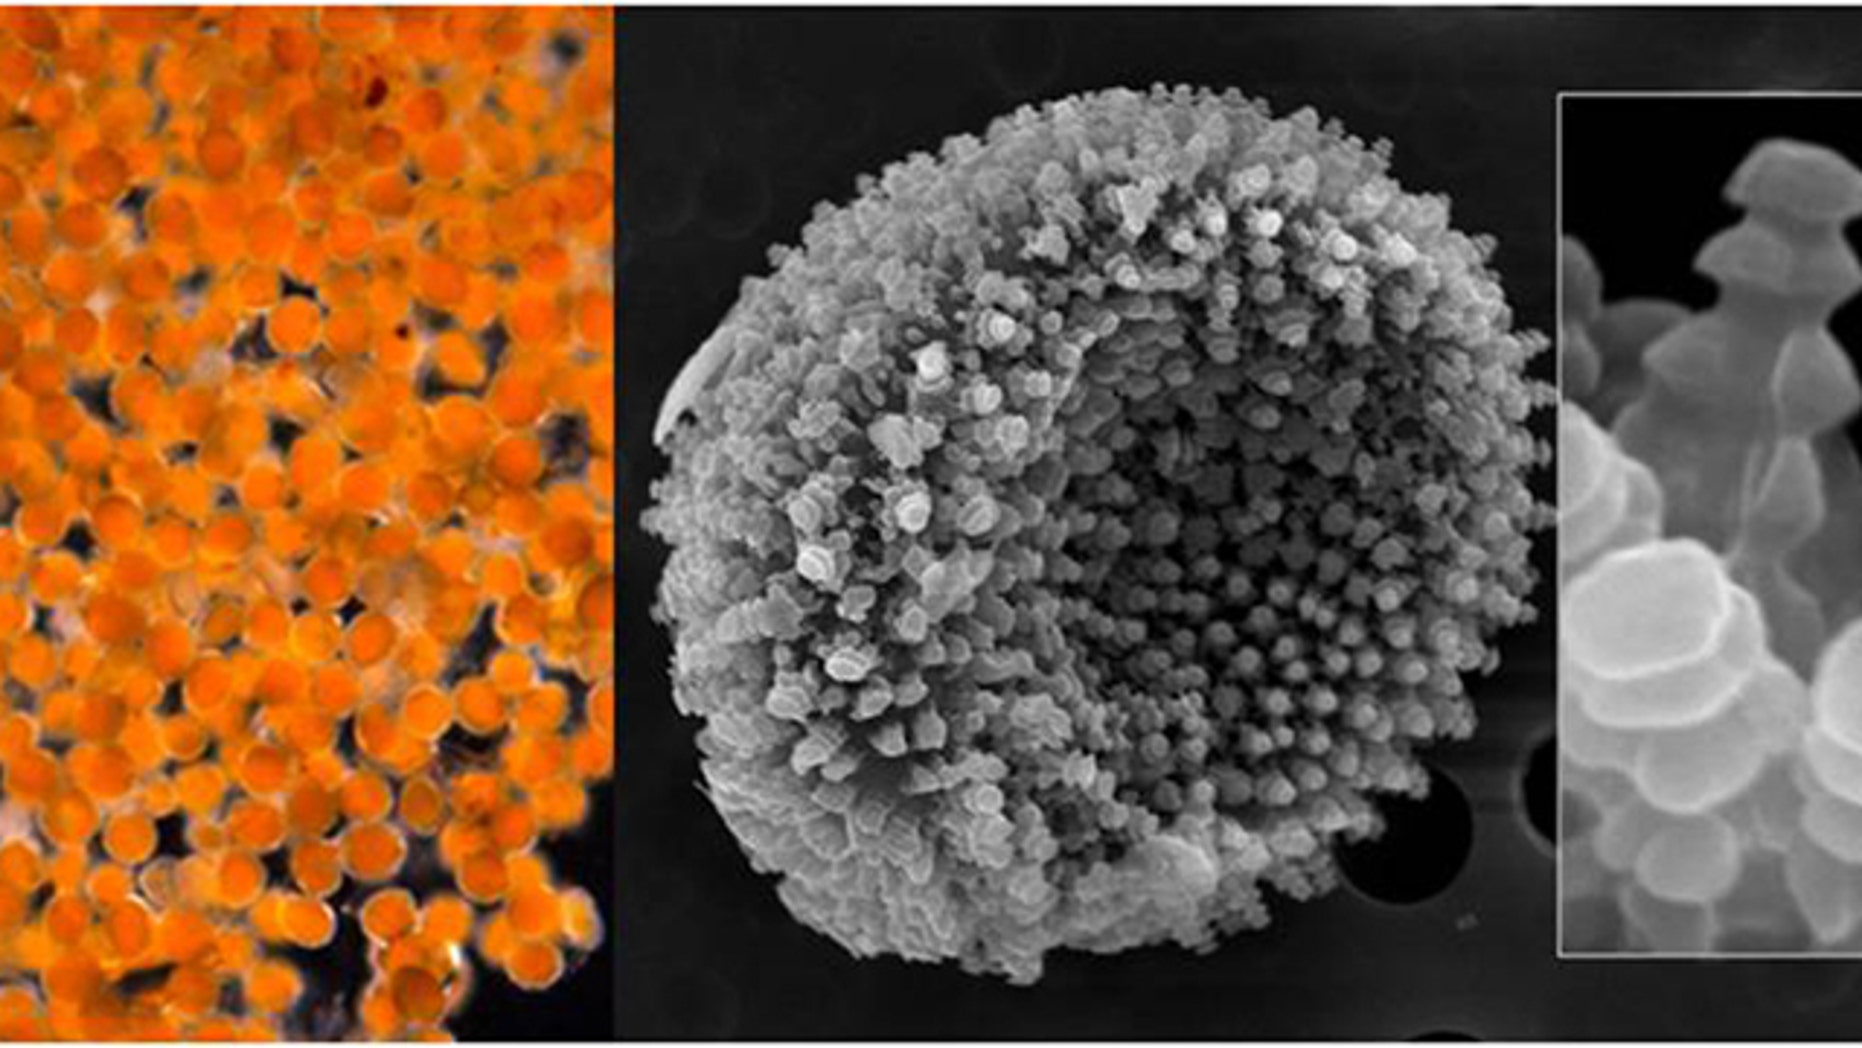 A magnified views of an orange goo that appeared Aug. 3, 2011 along the shore of the village of Kivalina, Alaska. The goo turned out to be fungal spores, not millions of microscopic eggs as indicated by preliminary analysis, scientists said Thursday, Aug. 18, 2011.